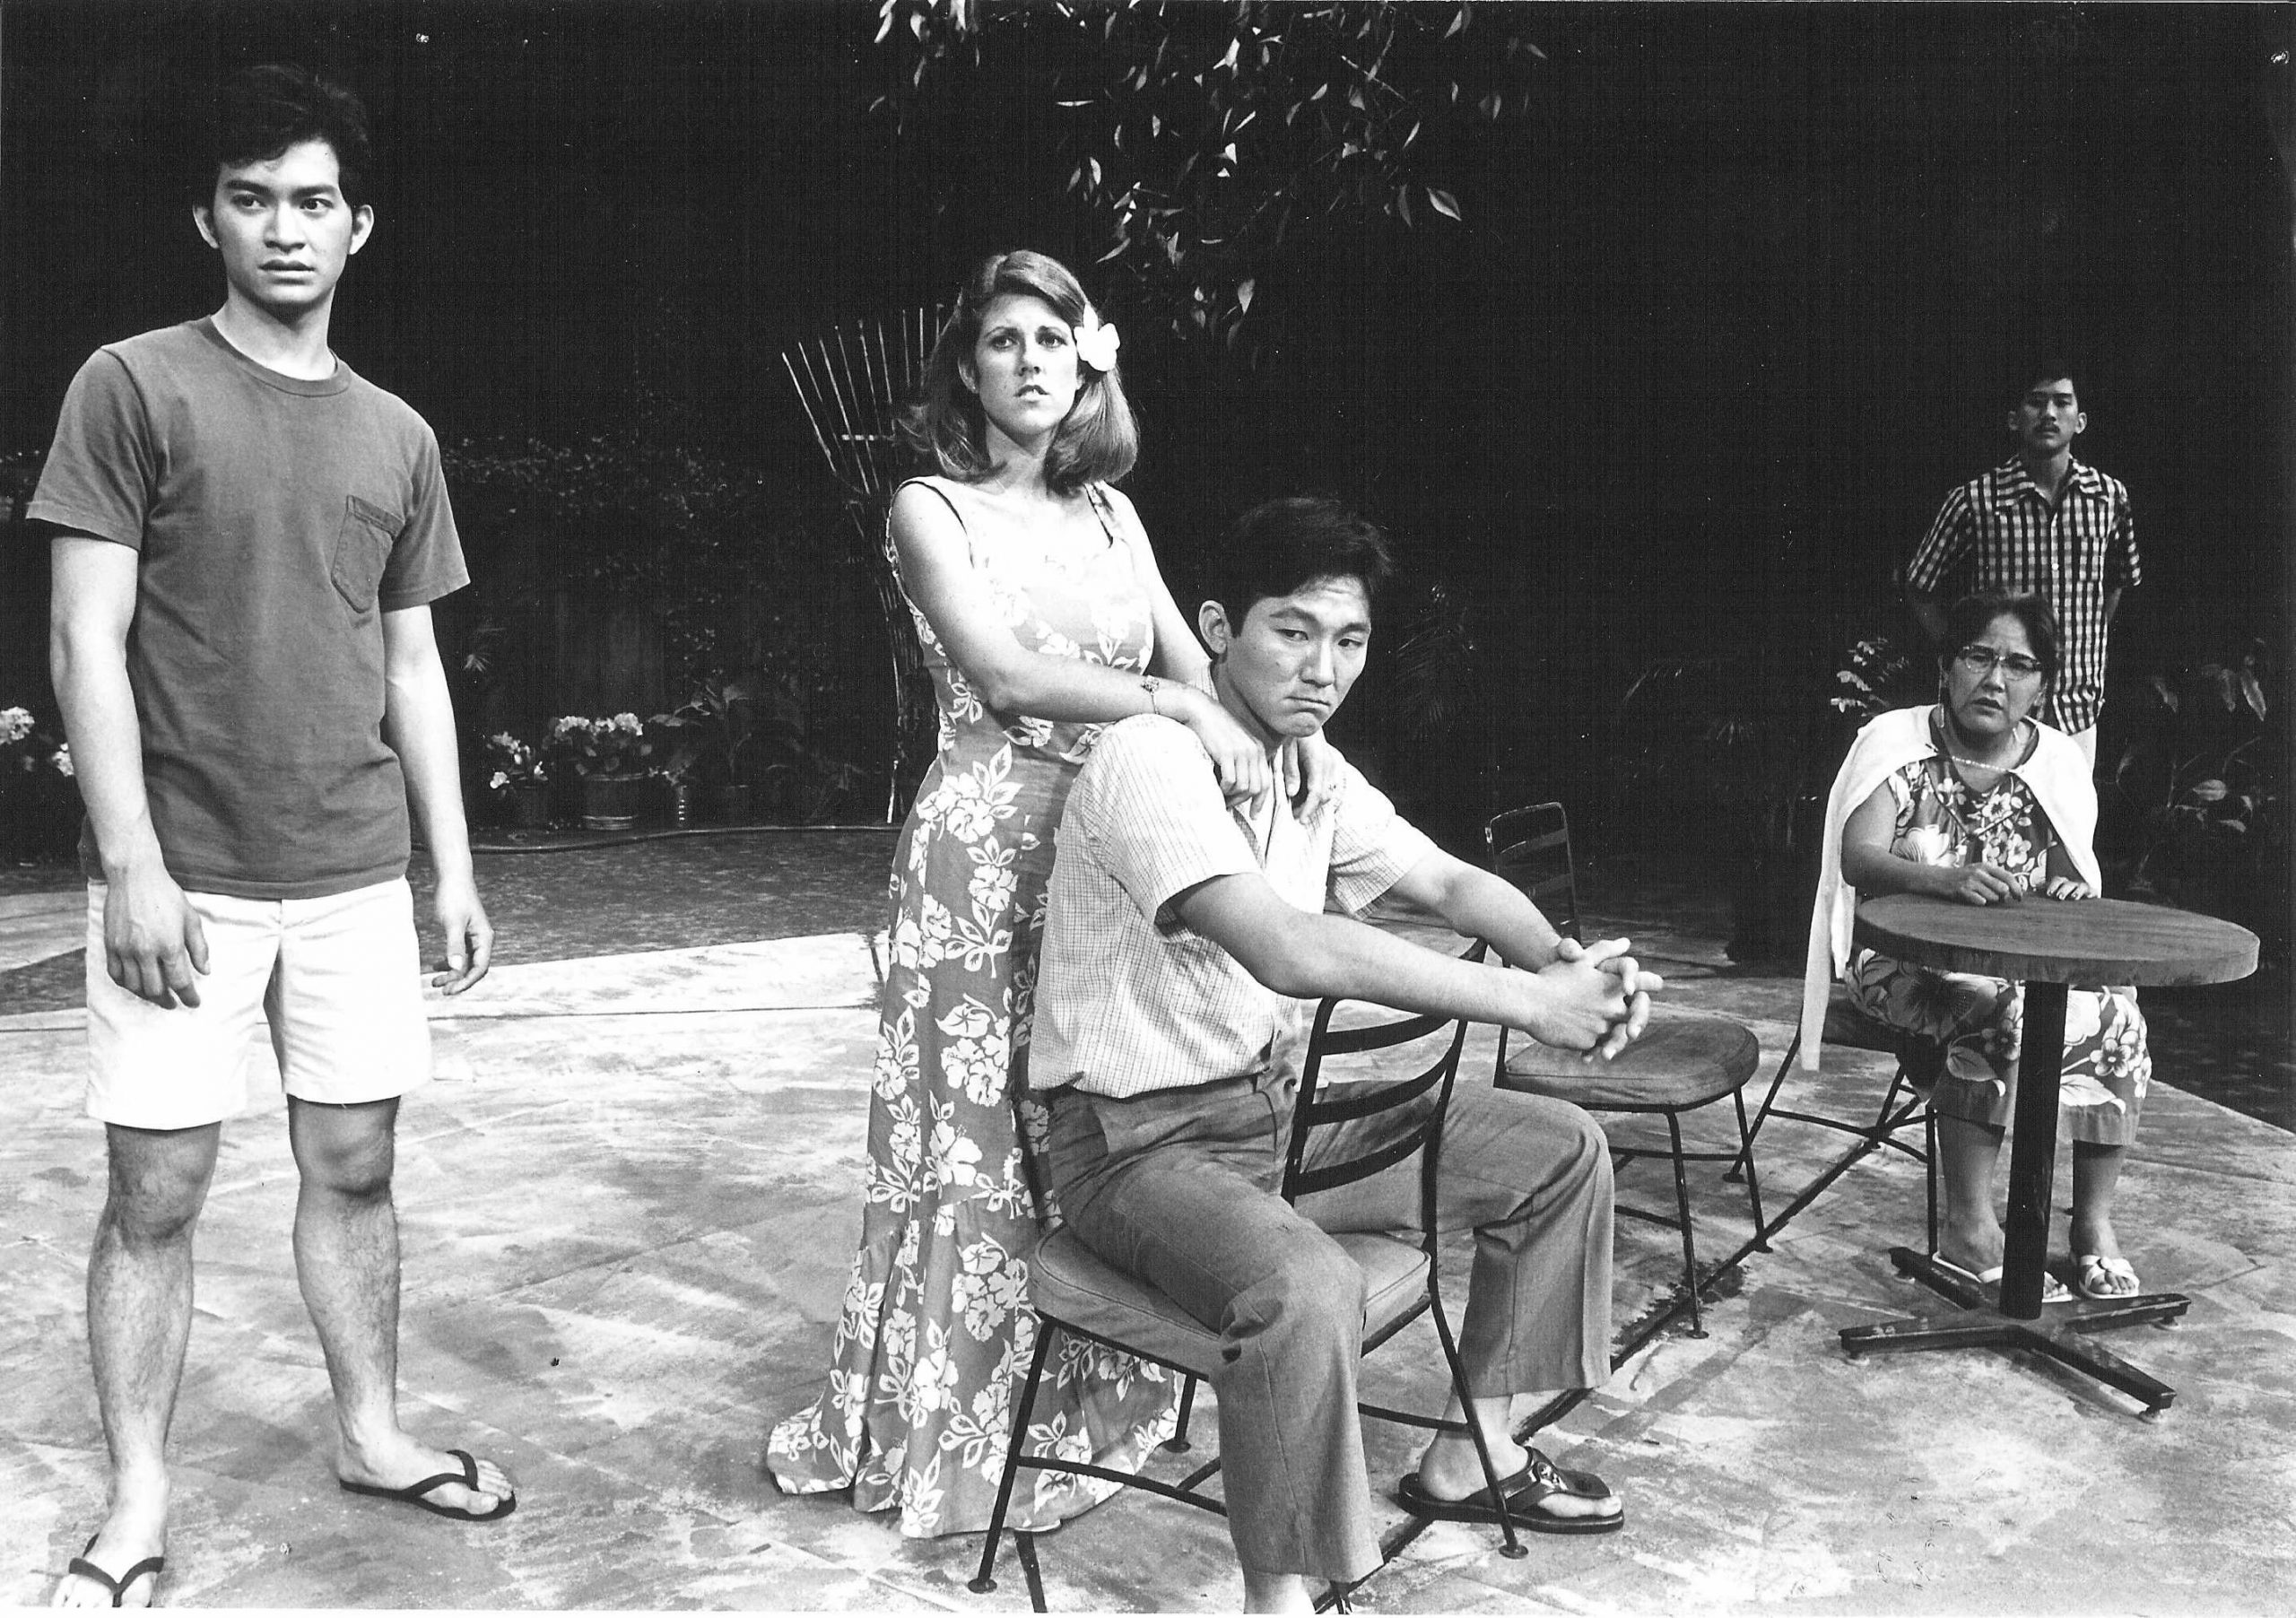 Rights to Works of Iconic Hawaiʻi Playwright Edward Sakamoto Gifted to UH Mānoa